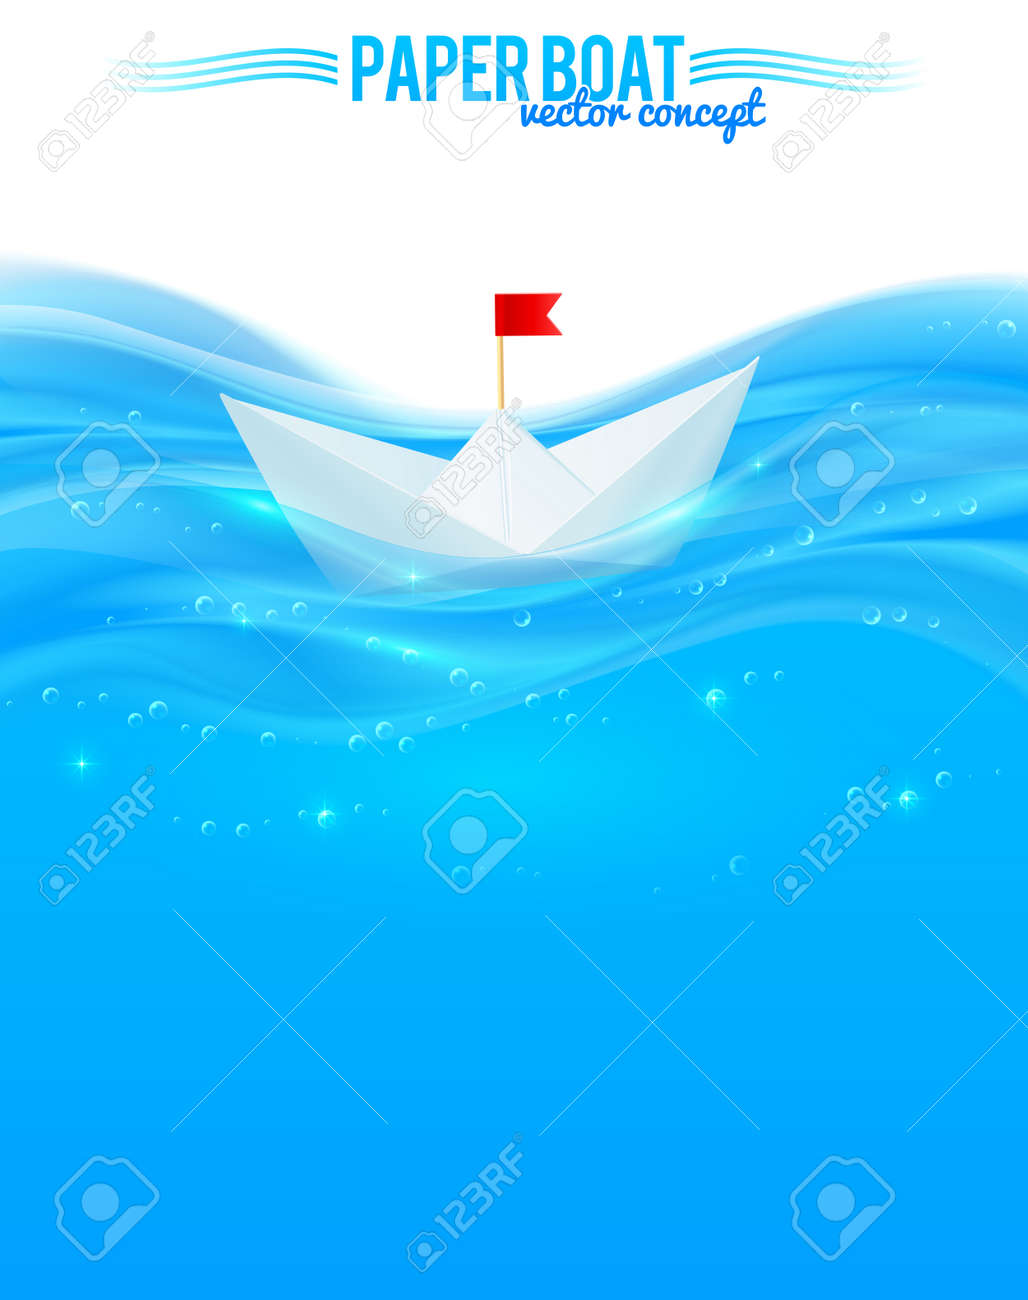 Abstract Vector Realistic Water With Paper Boat Design Template For Your Leaflet Stock Photo